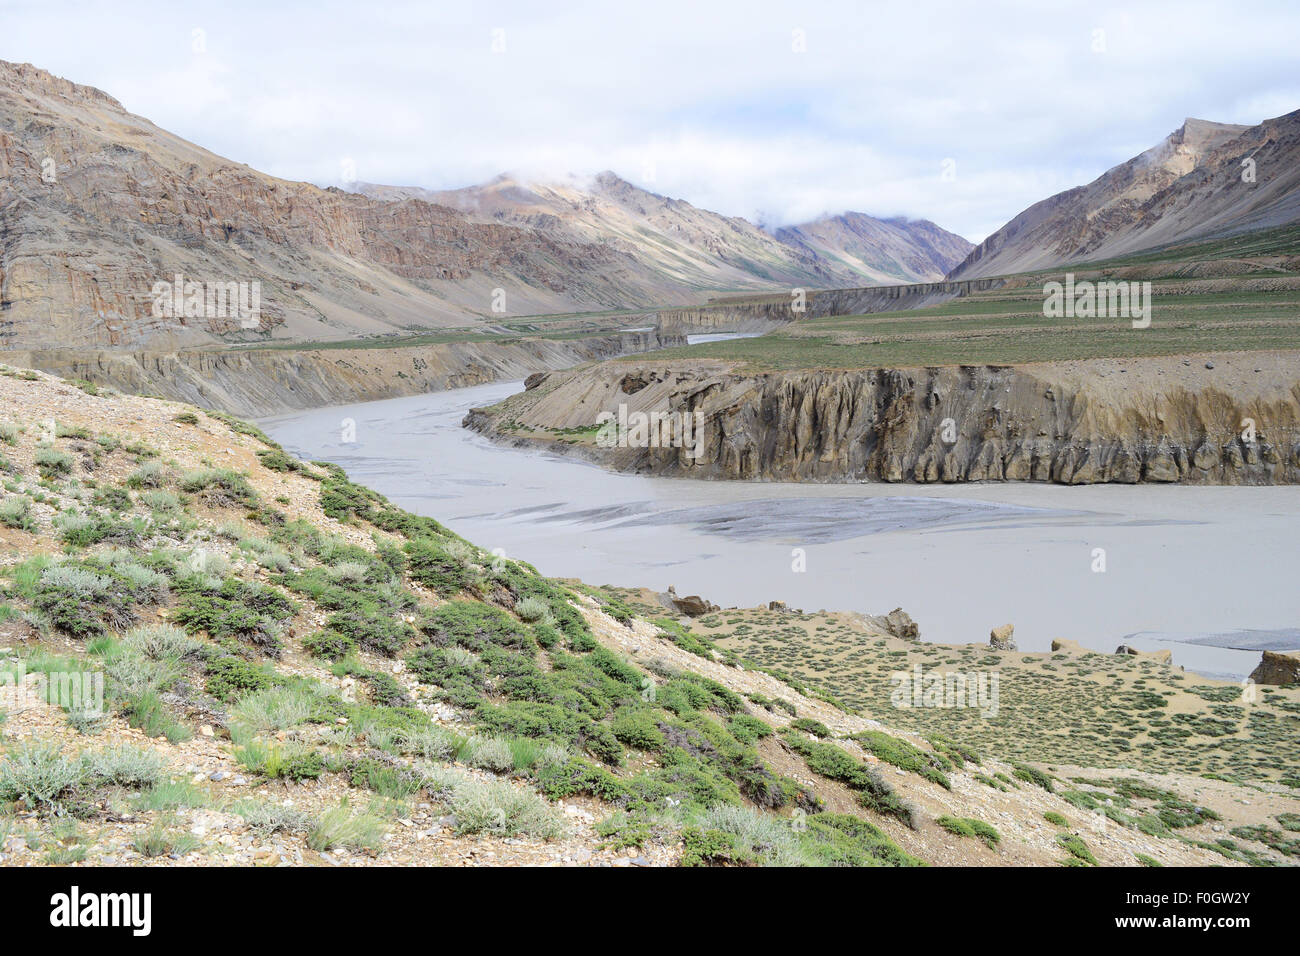 Beautiful Geography of sarchu in Ladakh Himachal Pradesh boundary region of Himalayas Mountain range and banks of - Stock Image